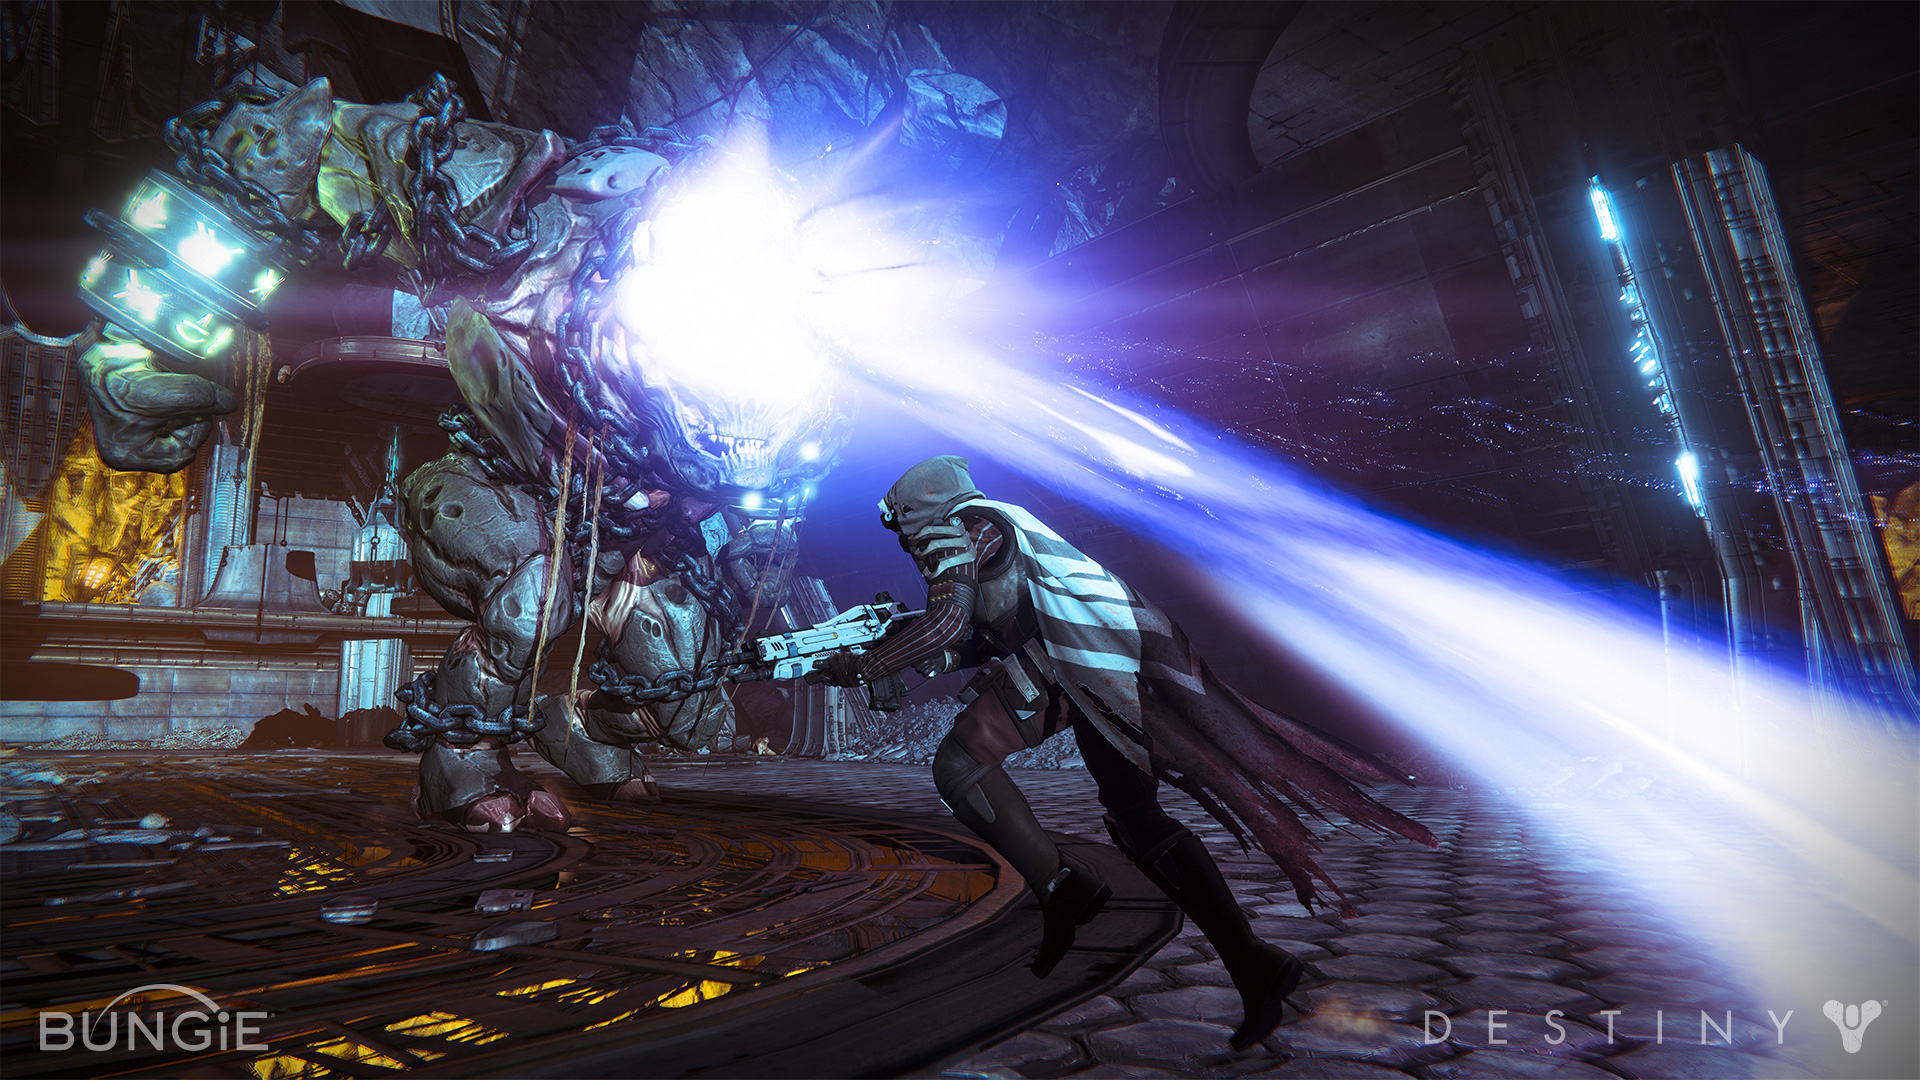 Destiny beta reportedly includes four story chapters and competitive multiplayer